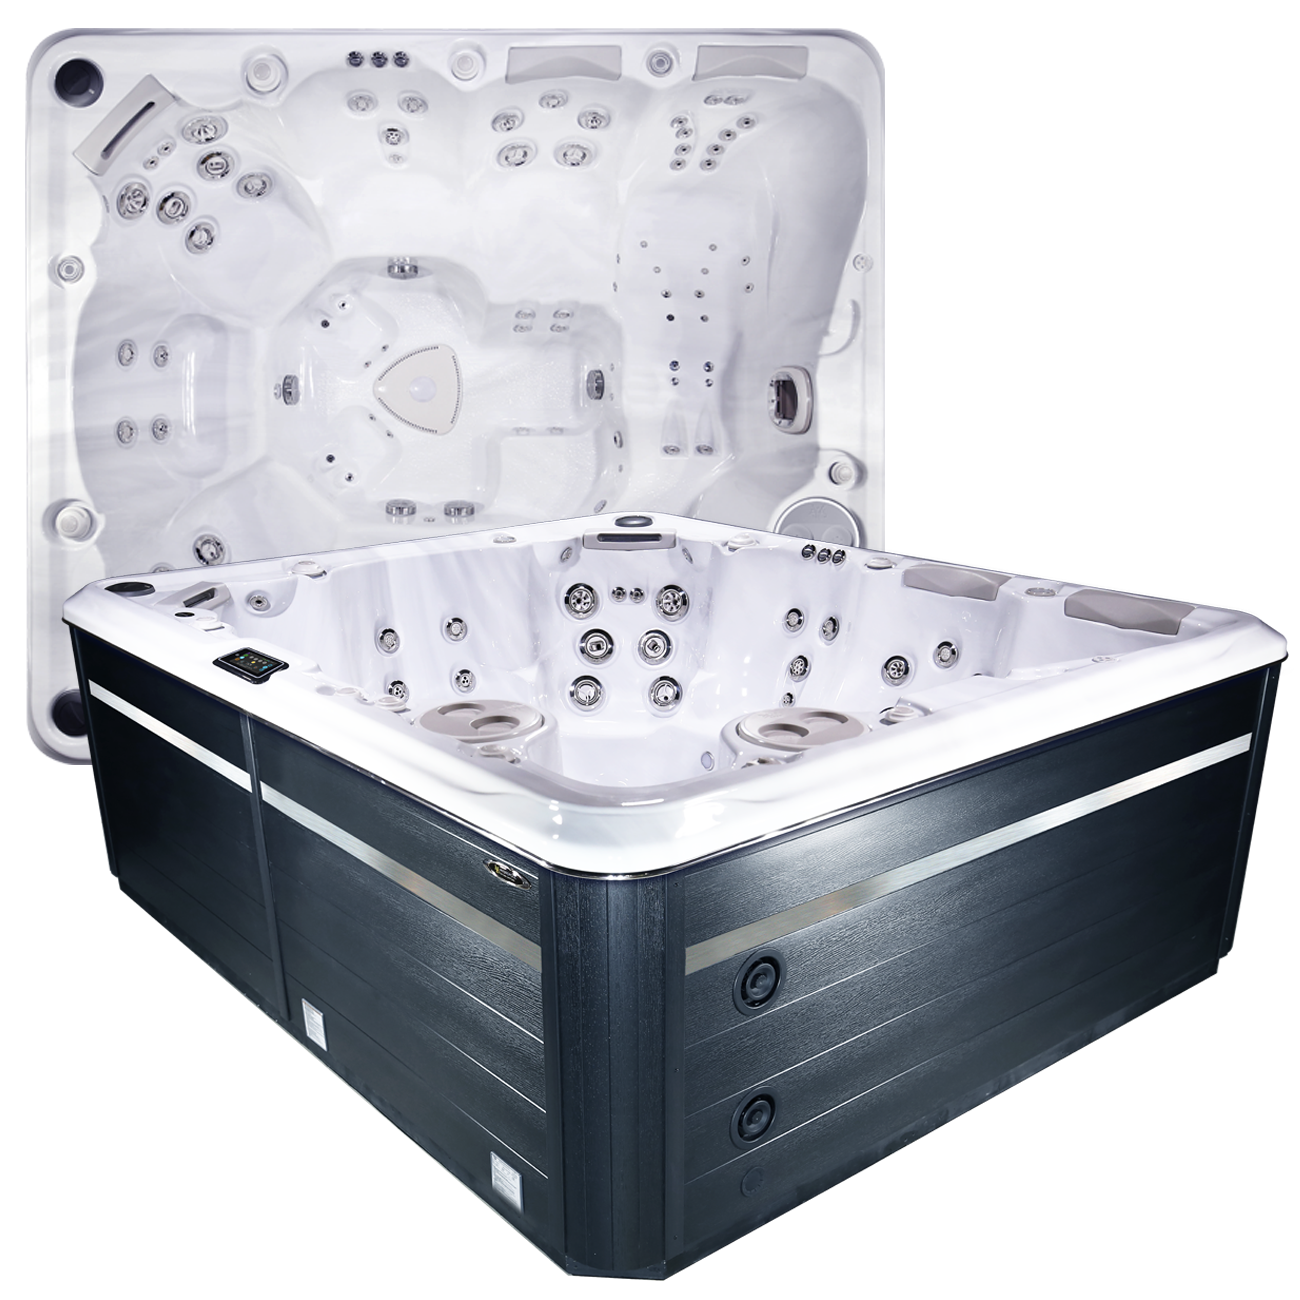 970 Titanium - 9 Person Hot Tub